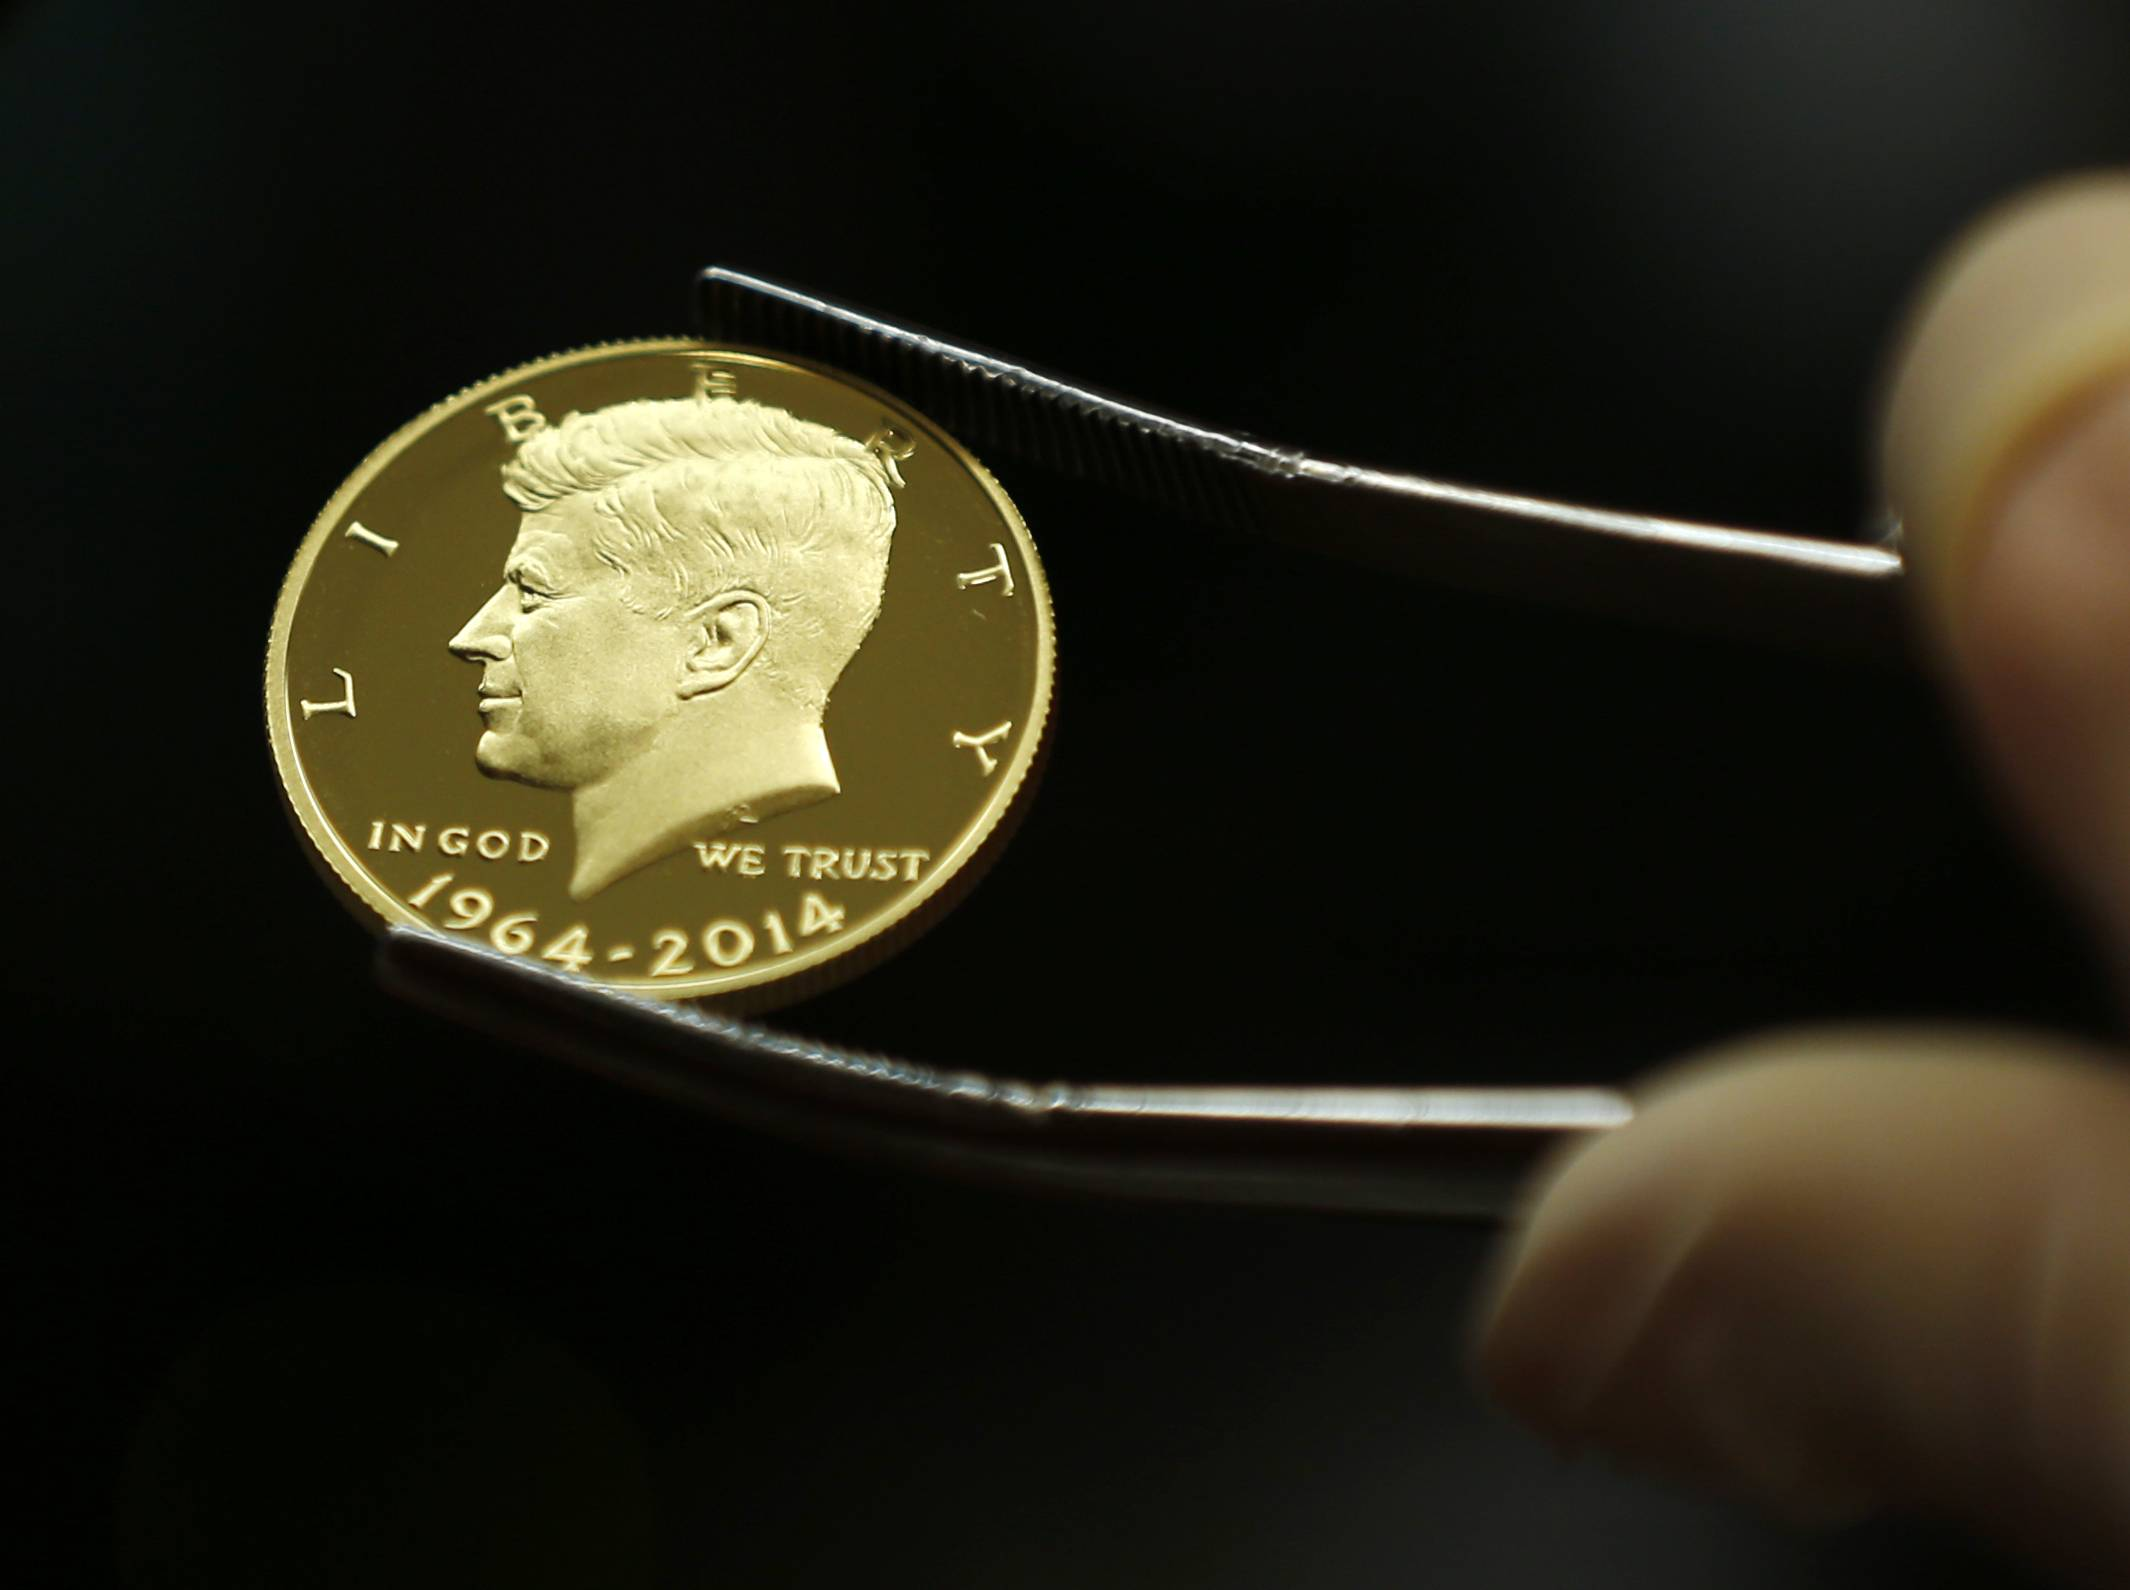 A newly-stamped gold coin of President John F. Kennedy is examined at the U.S. Mint at West Point in West Point, N.Y. Kennedy is getting a new look on the new coin that is being made by the mint to mark the 50 years since the slain president debuted on a half-dollar.